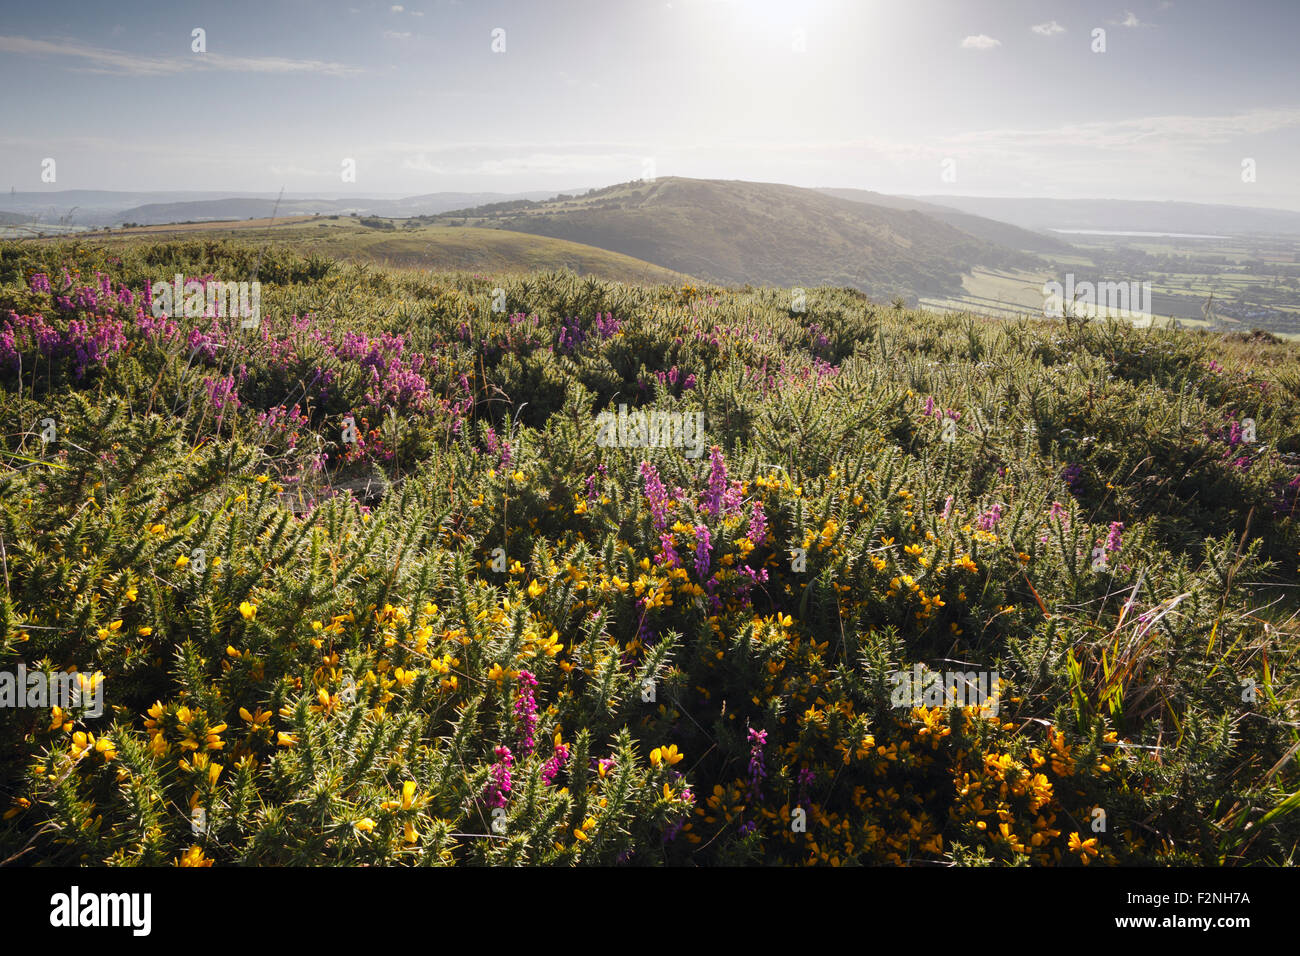 Heather and Gorse on Crook Peak. The Mendip Hills. Somerset. UK. - Stock Image